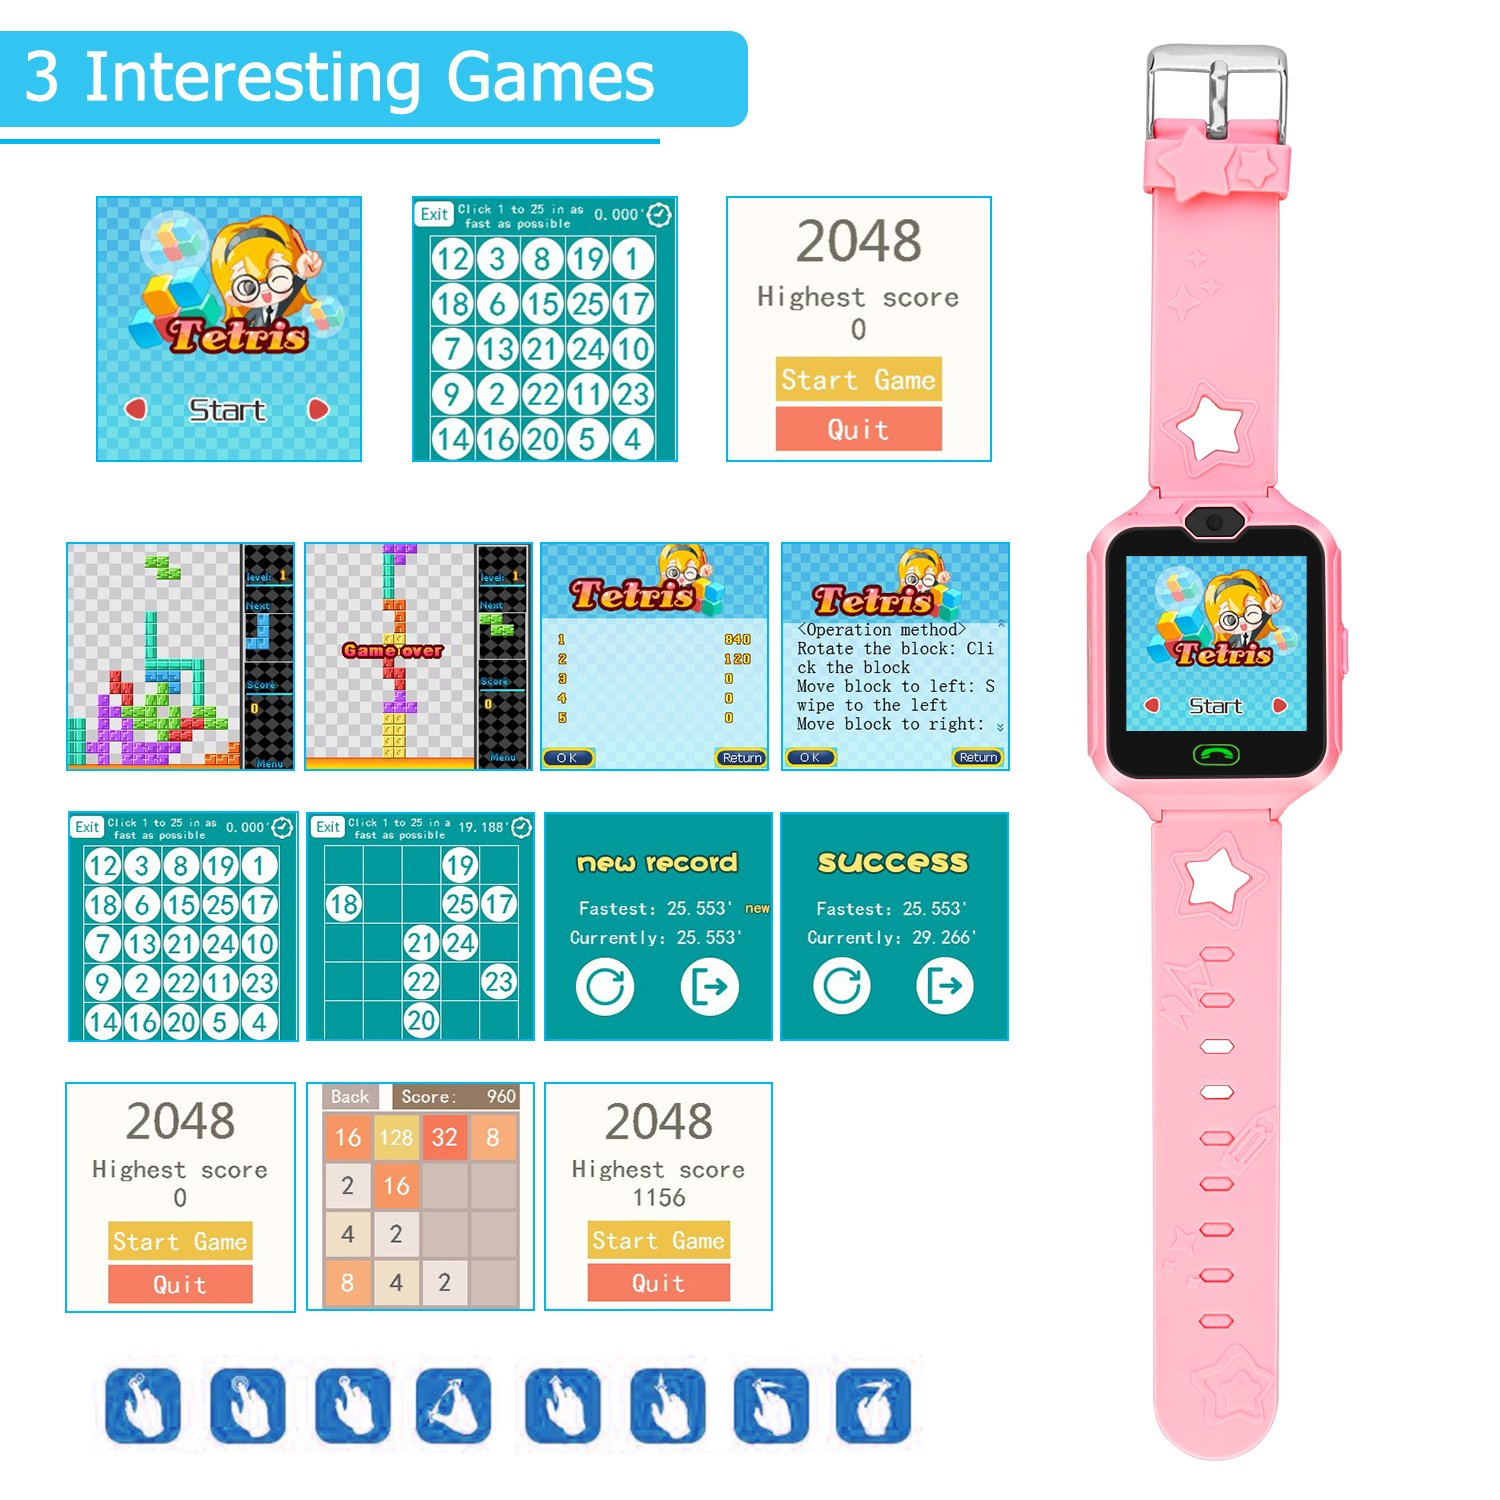 Kids Smart Watch Phone,Unlocked Waterproof Smart Phone Watch for Girls Boys with Camera Games Touchscreen,Children SOS Cell Phone Watch with SIM and SD Slot,Perfect Holiday Birthday Gifts(Pink) by MIMLI (Image #4)